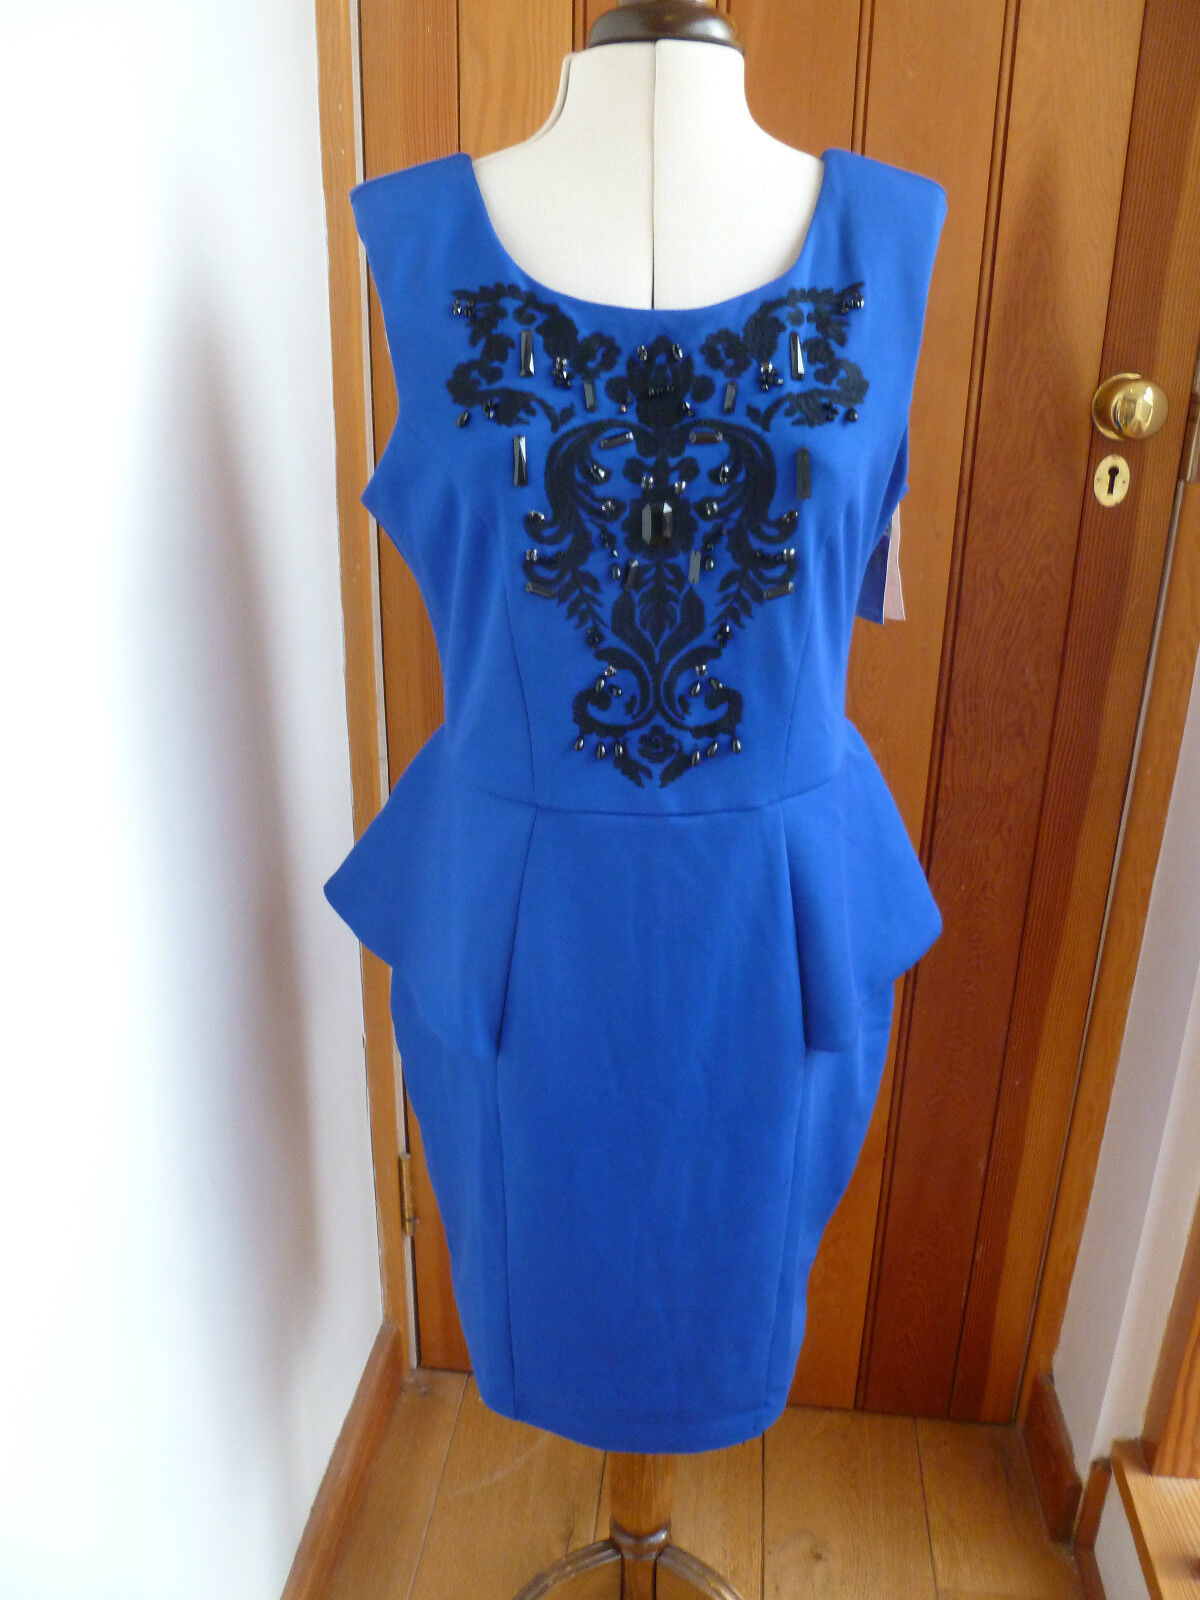 LIPSY BRIGHT ROYAL blueE BEADED AND EMBROIDERY DETAIL PEPLUM DRESS 16 BNWT